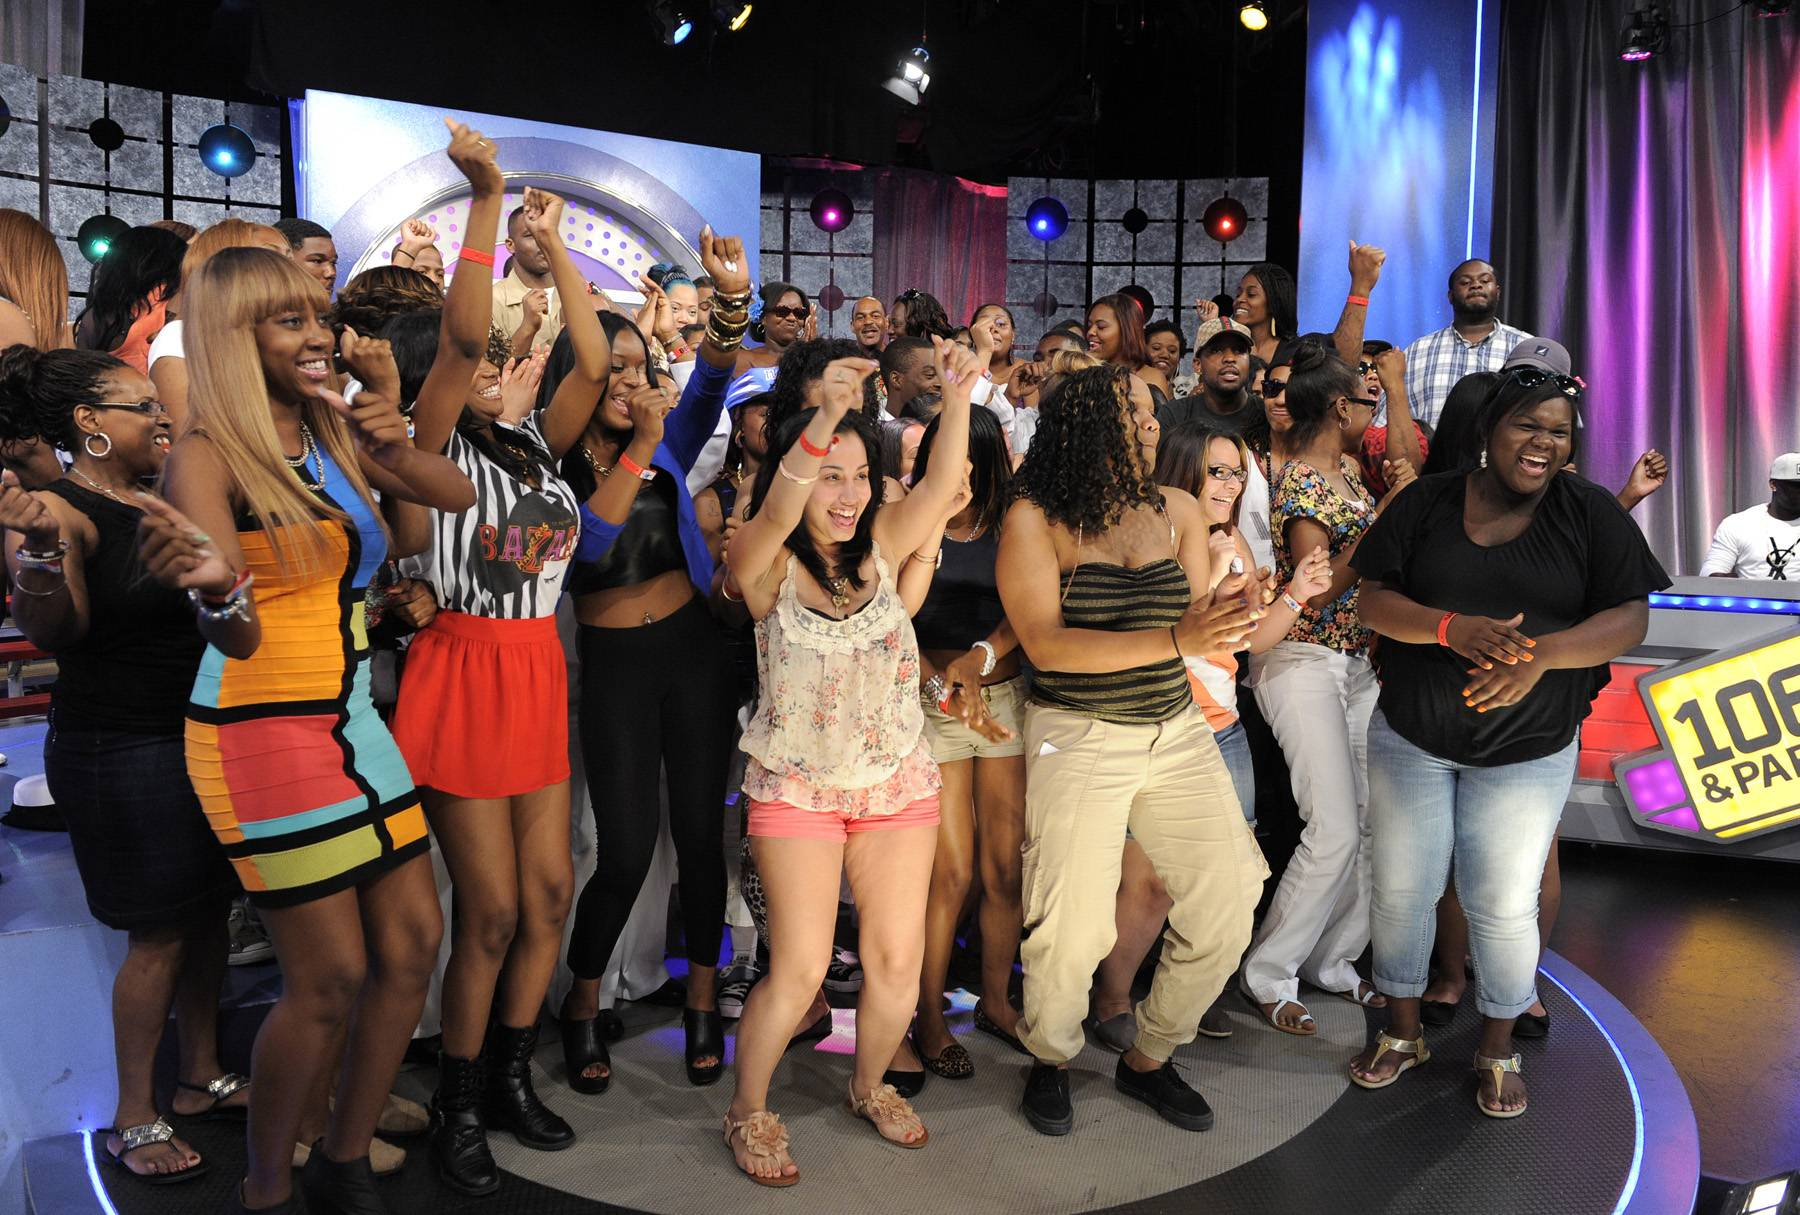 Get Live - The livest audience at 106 & Park, May 29, 2012. (Photo: John Ricard / BET)